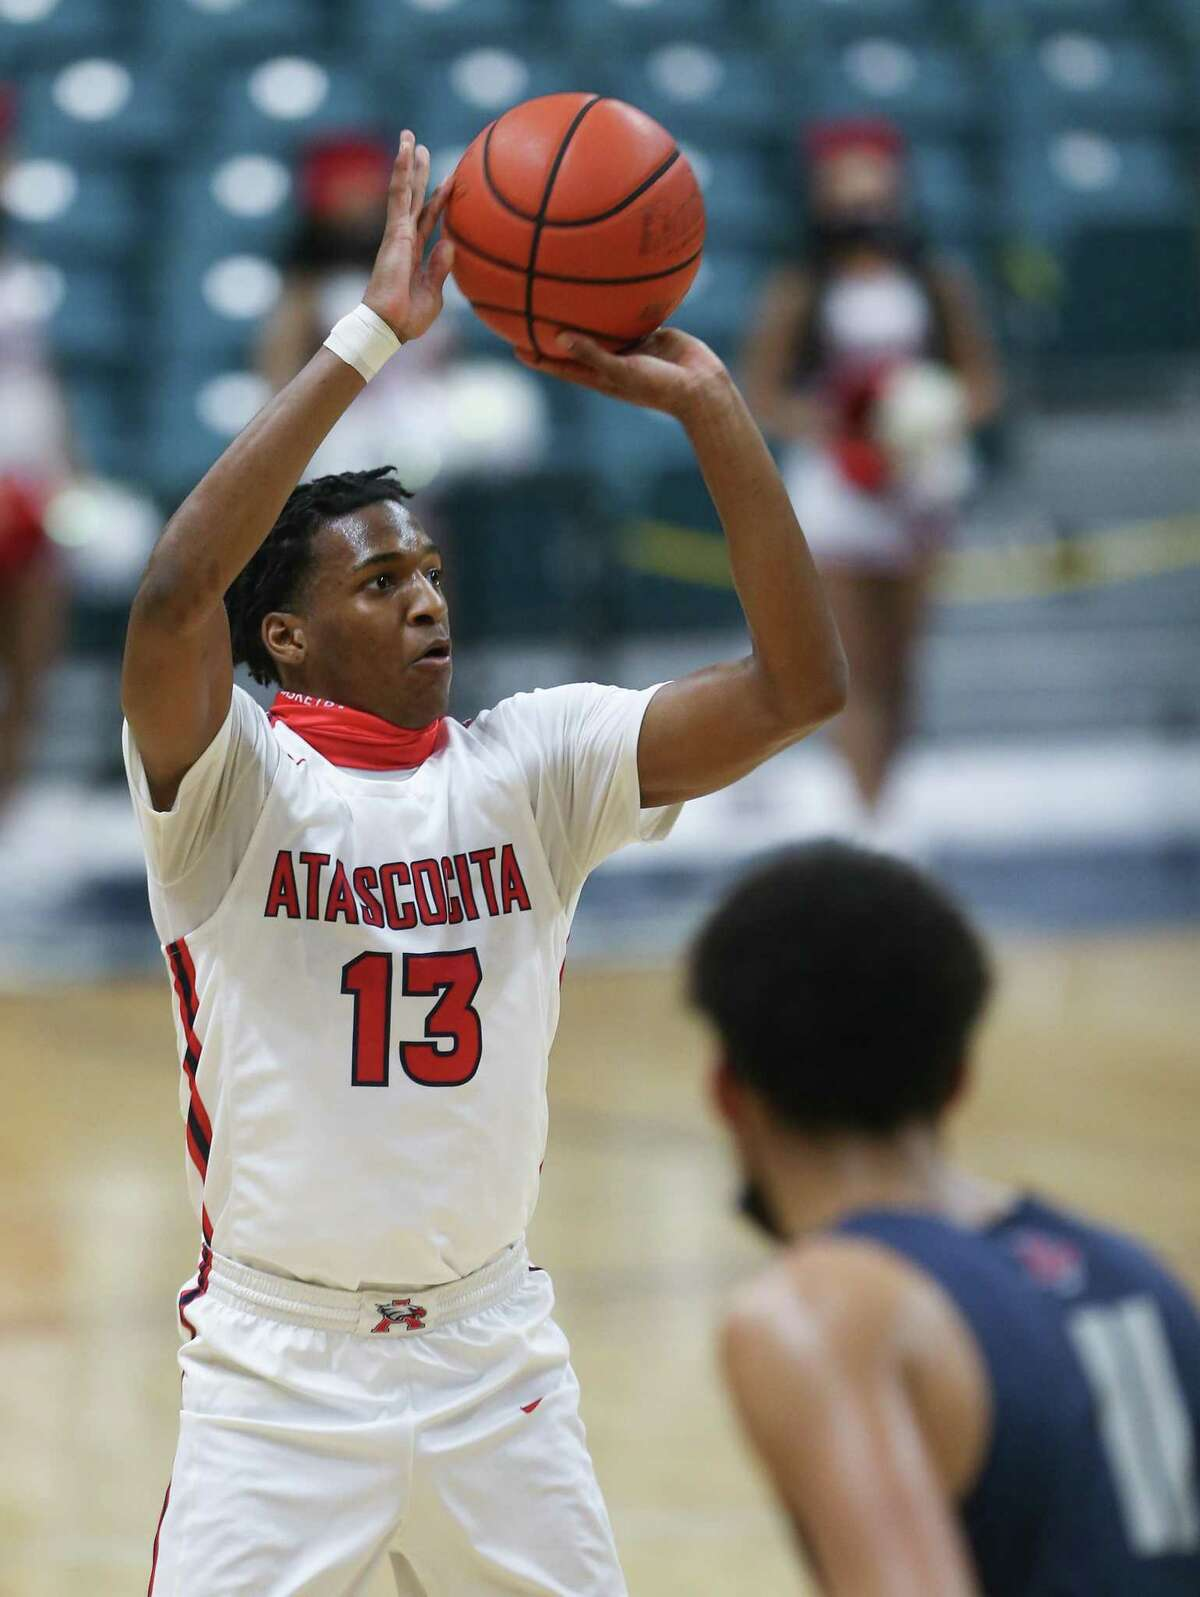 Atascocita guard Justin Collins (13) puts up a shot against reacts Dawson during 6A regional quarterfinals playoff game at Merrell Center in Katy on Saturday, Feb. 27, 2021. Atascocita won the game 55-54.